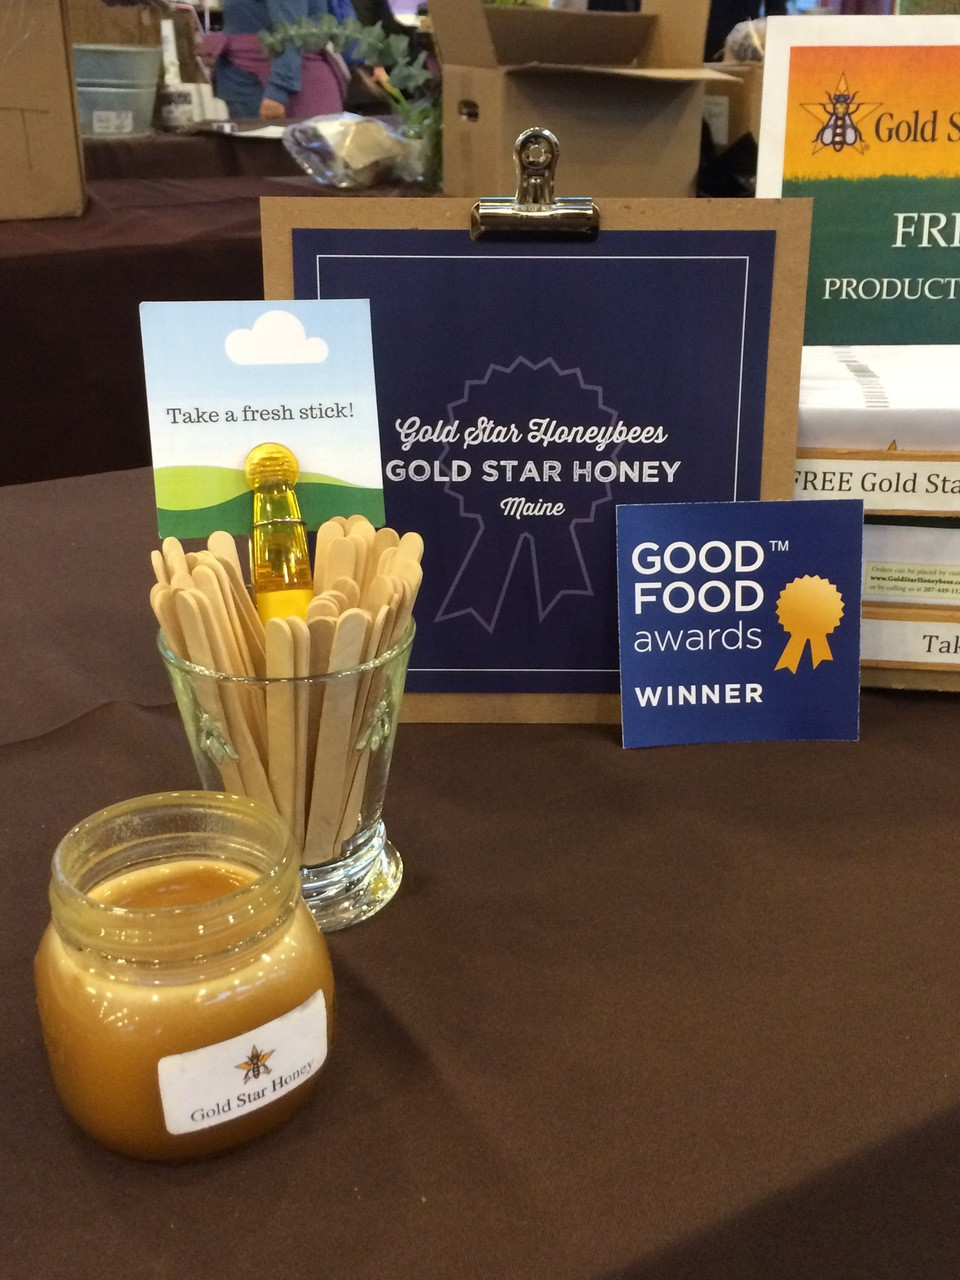 Award winning Gold Star Honey - comes from clean and natural Gold Star top bar hives.